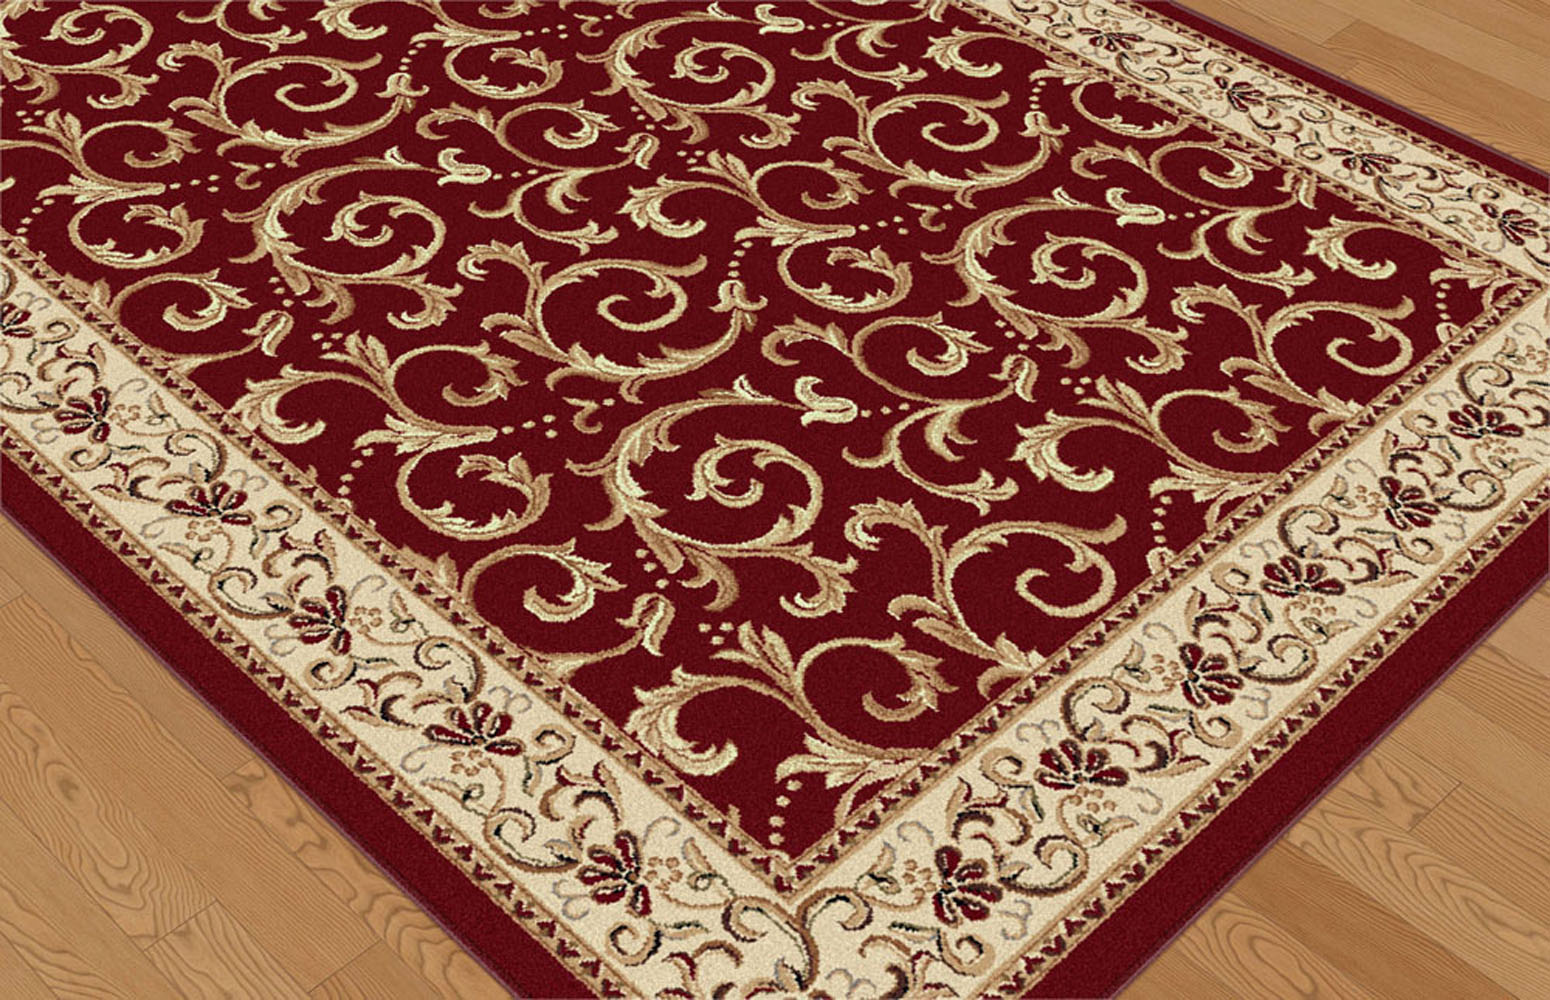 Red Vines Leaves Persien Area Rug Bordered Paneled Scrolls